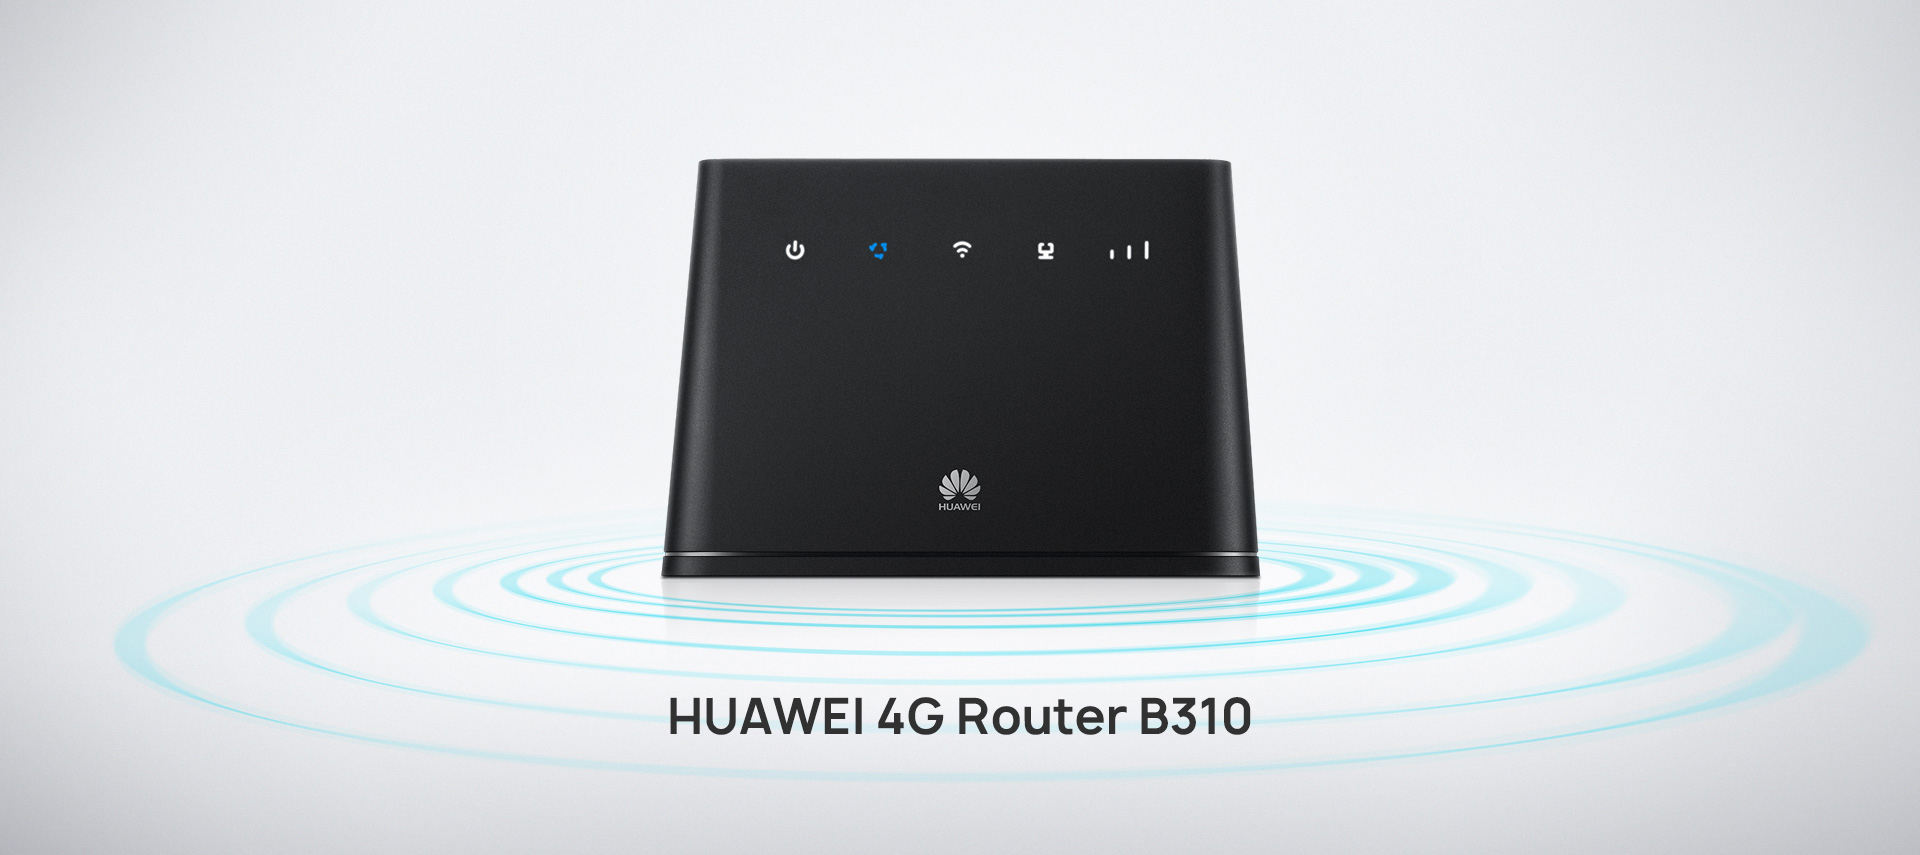 HUAWEI 4G Router B310, LTE CPE B310, wireless gateway 4G LTE